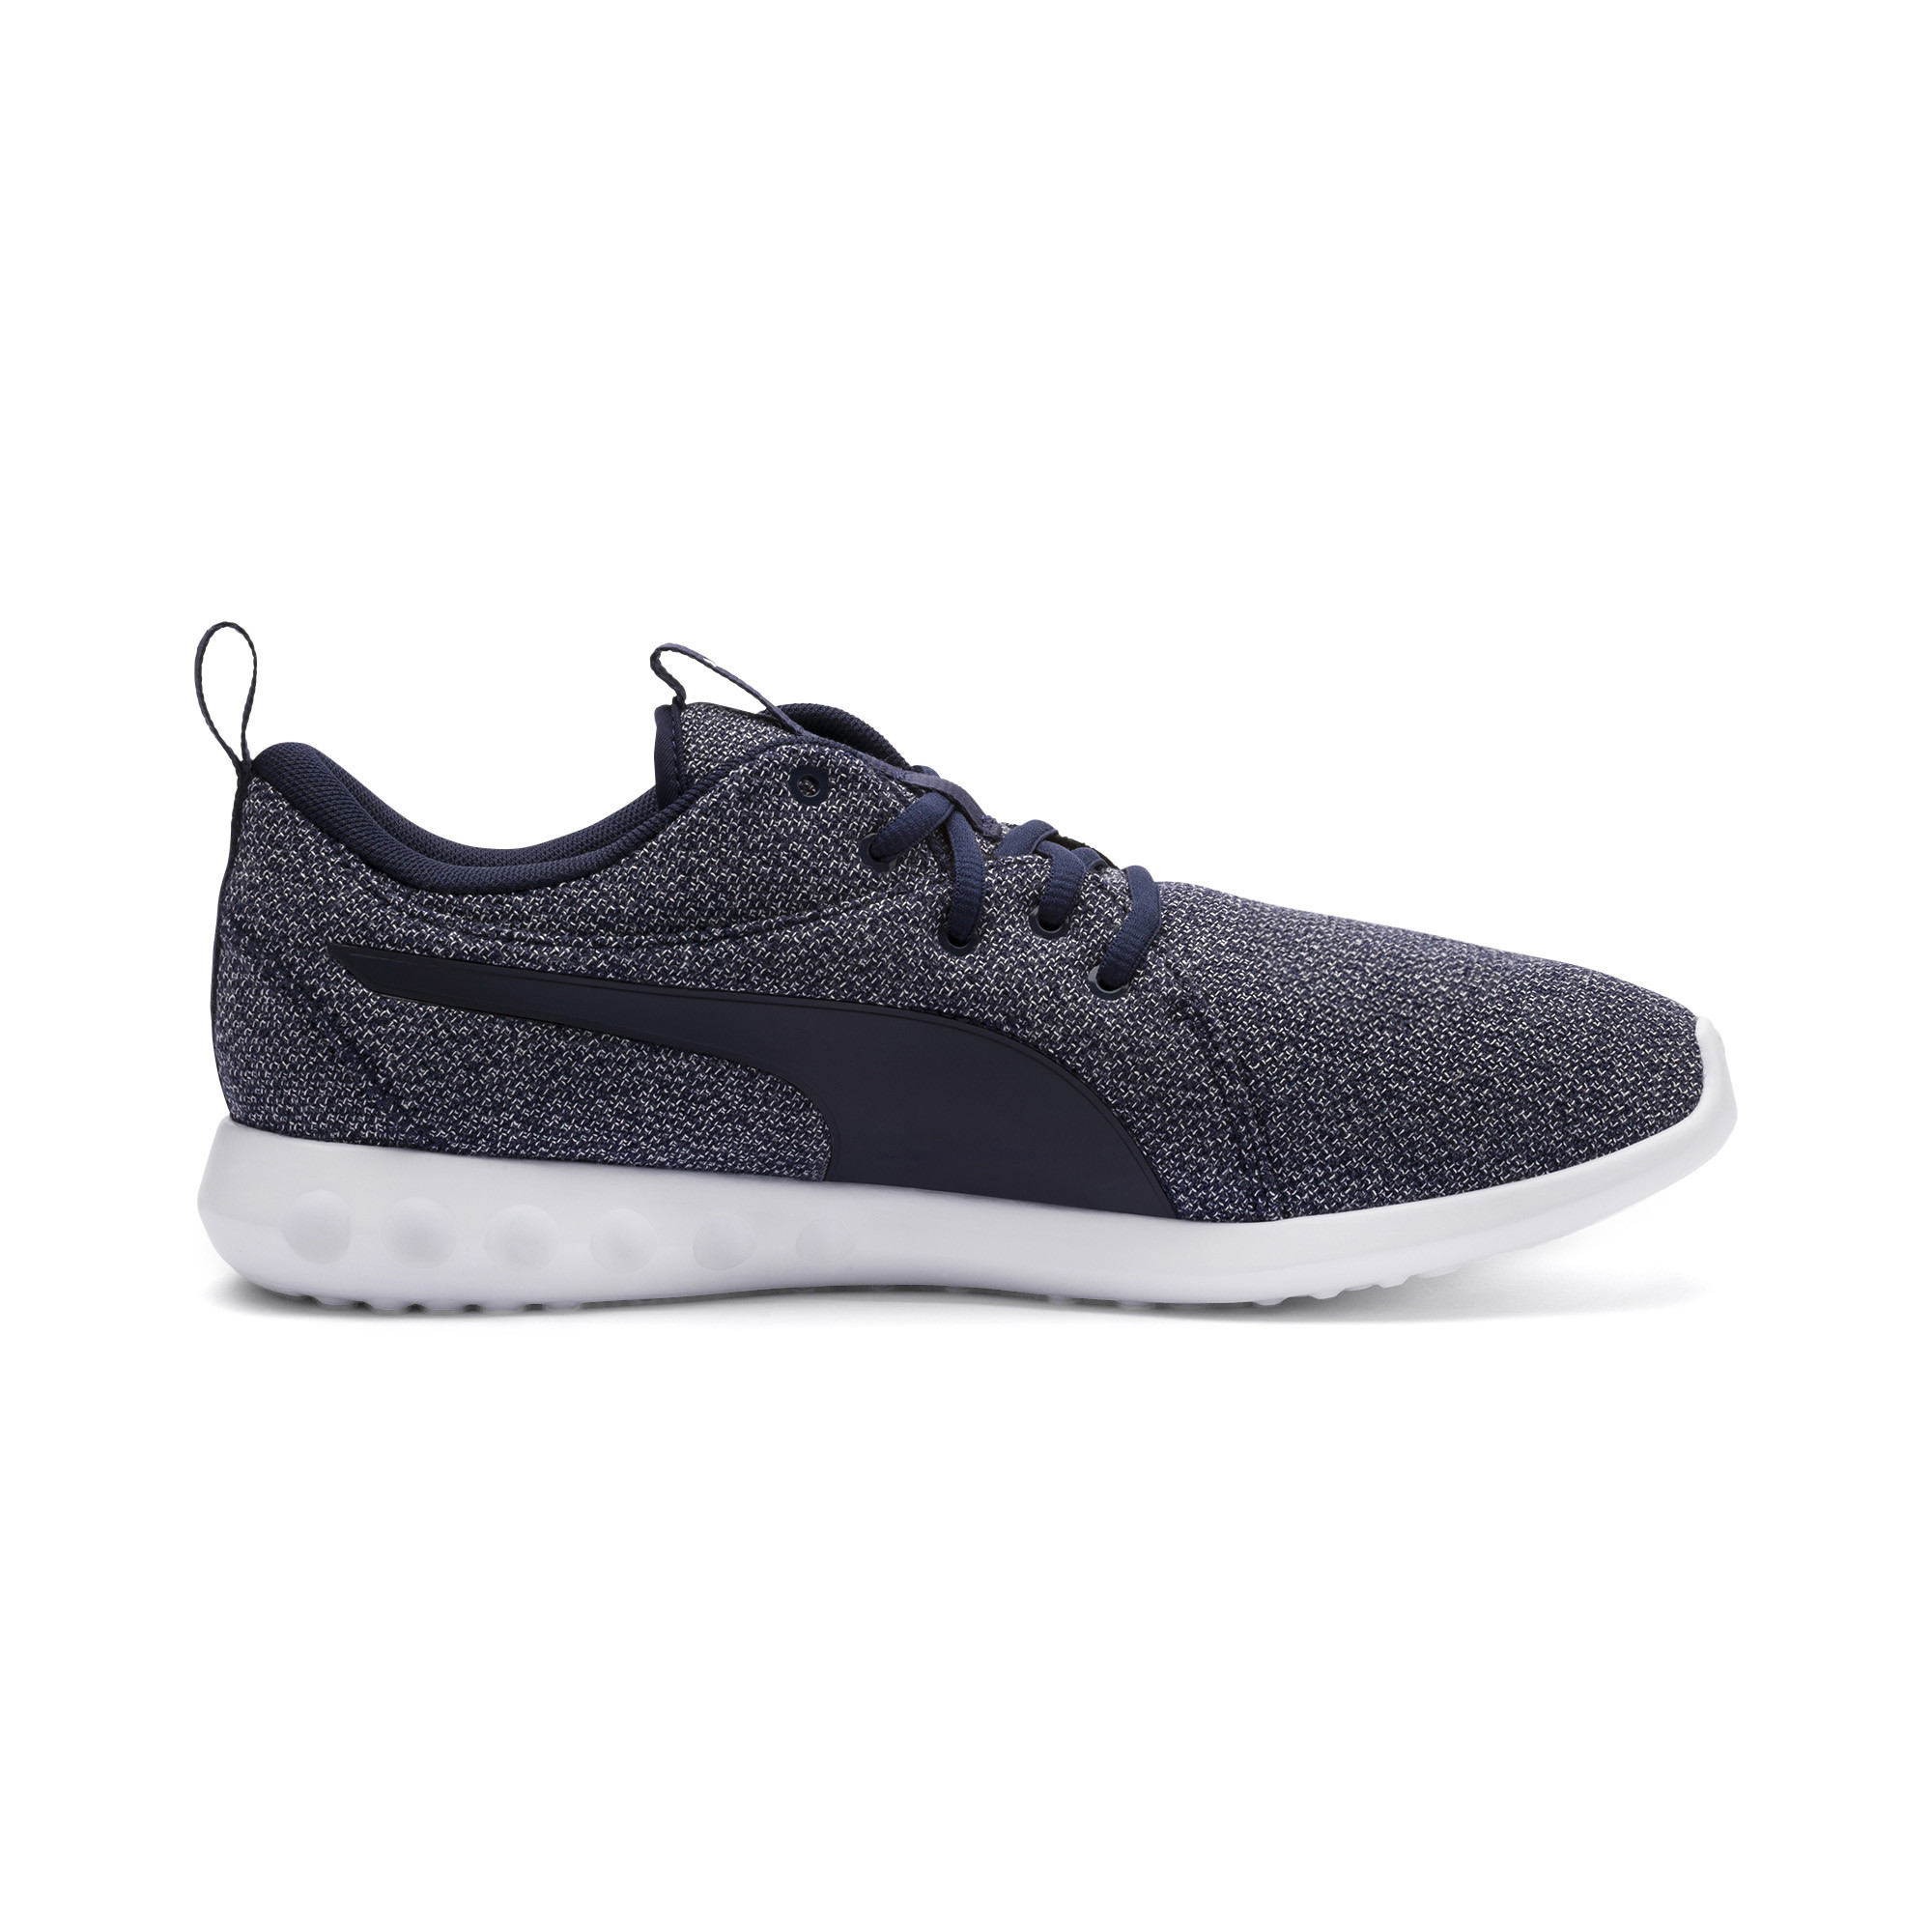 PUMA-Men-039-s-Carson-2-Knit-Training-Shoes thumbnail 25